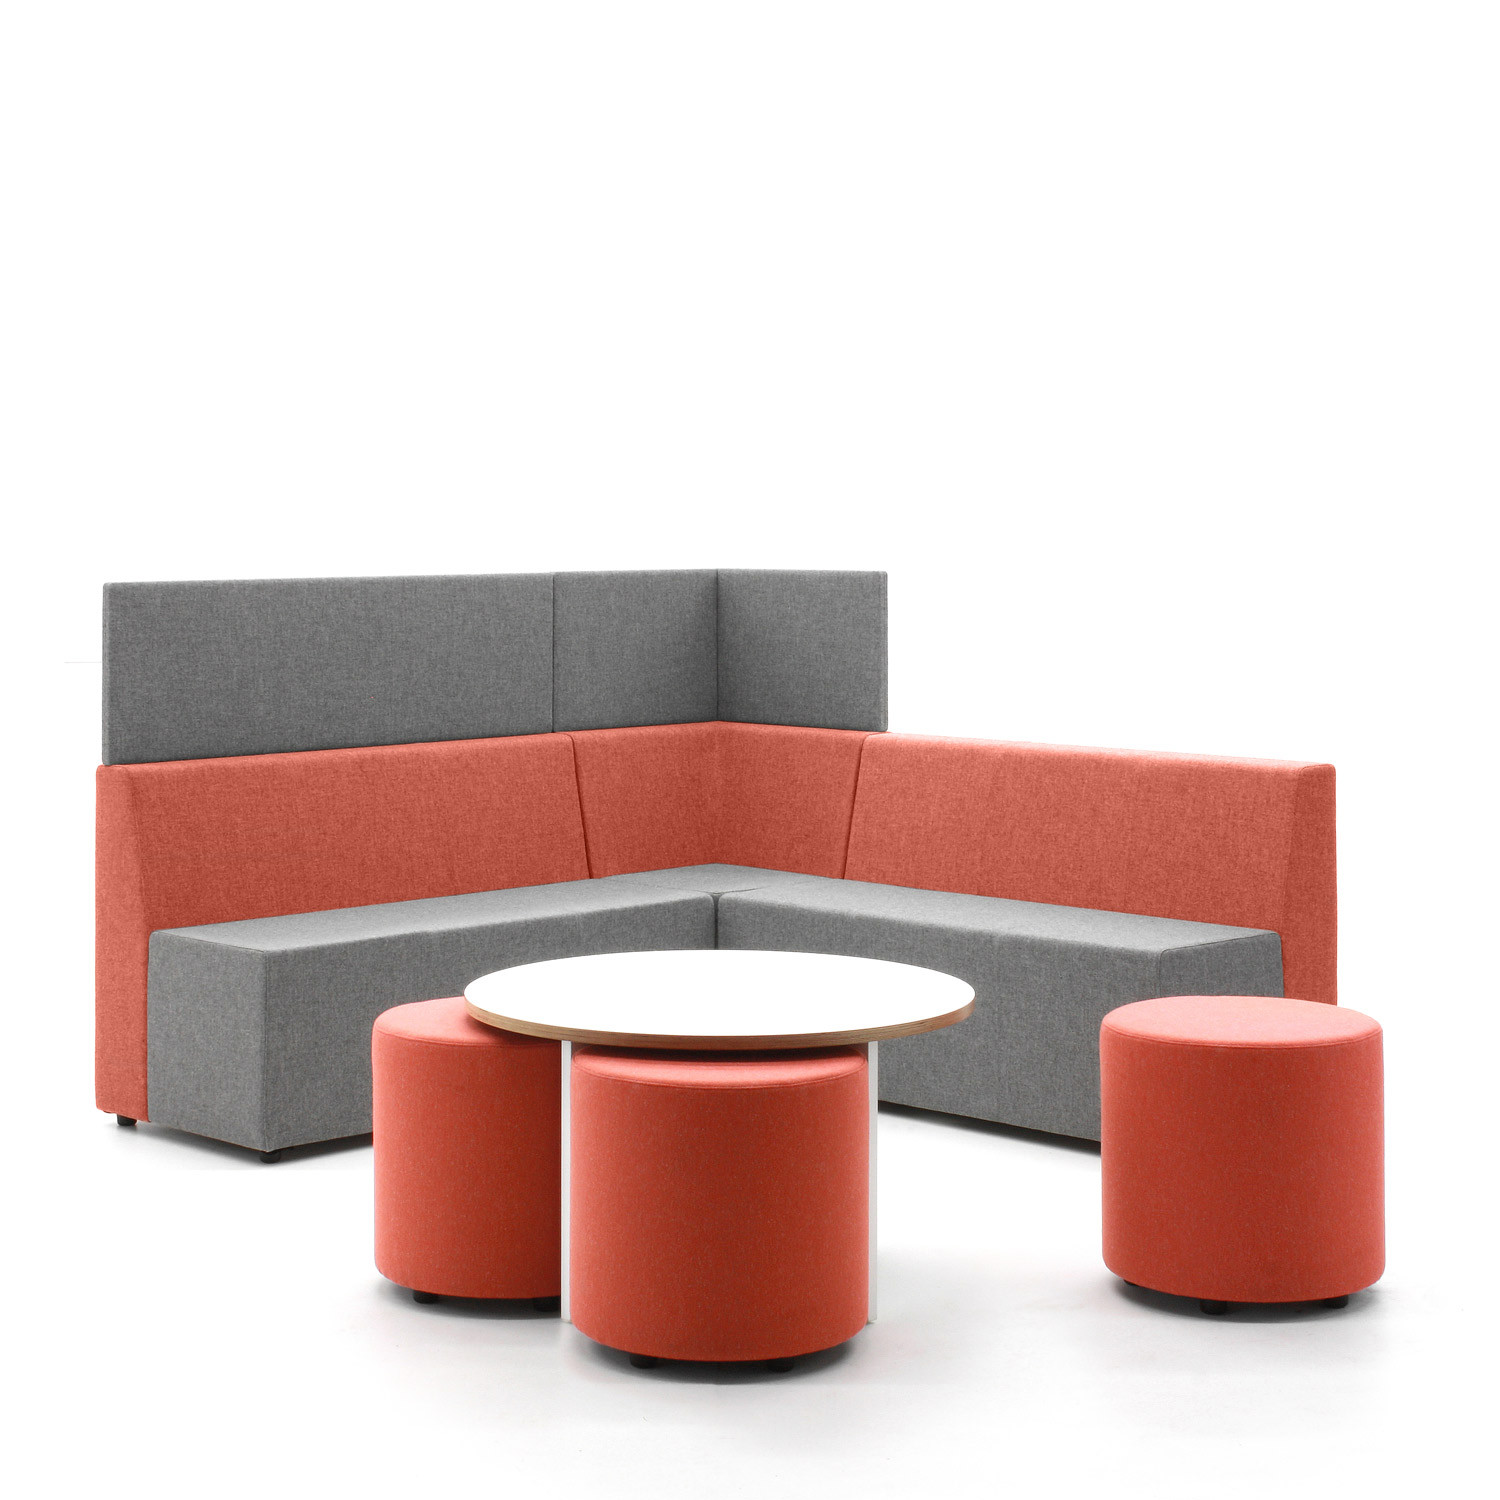 Box-it Informal Seating